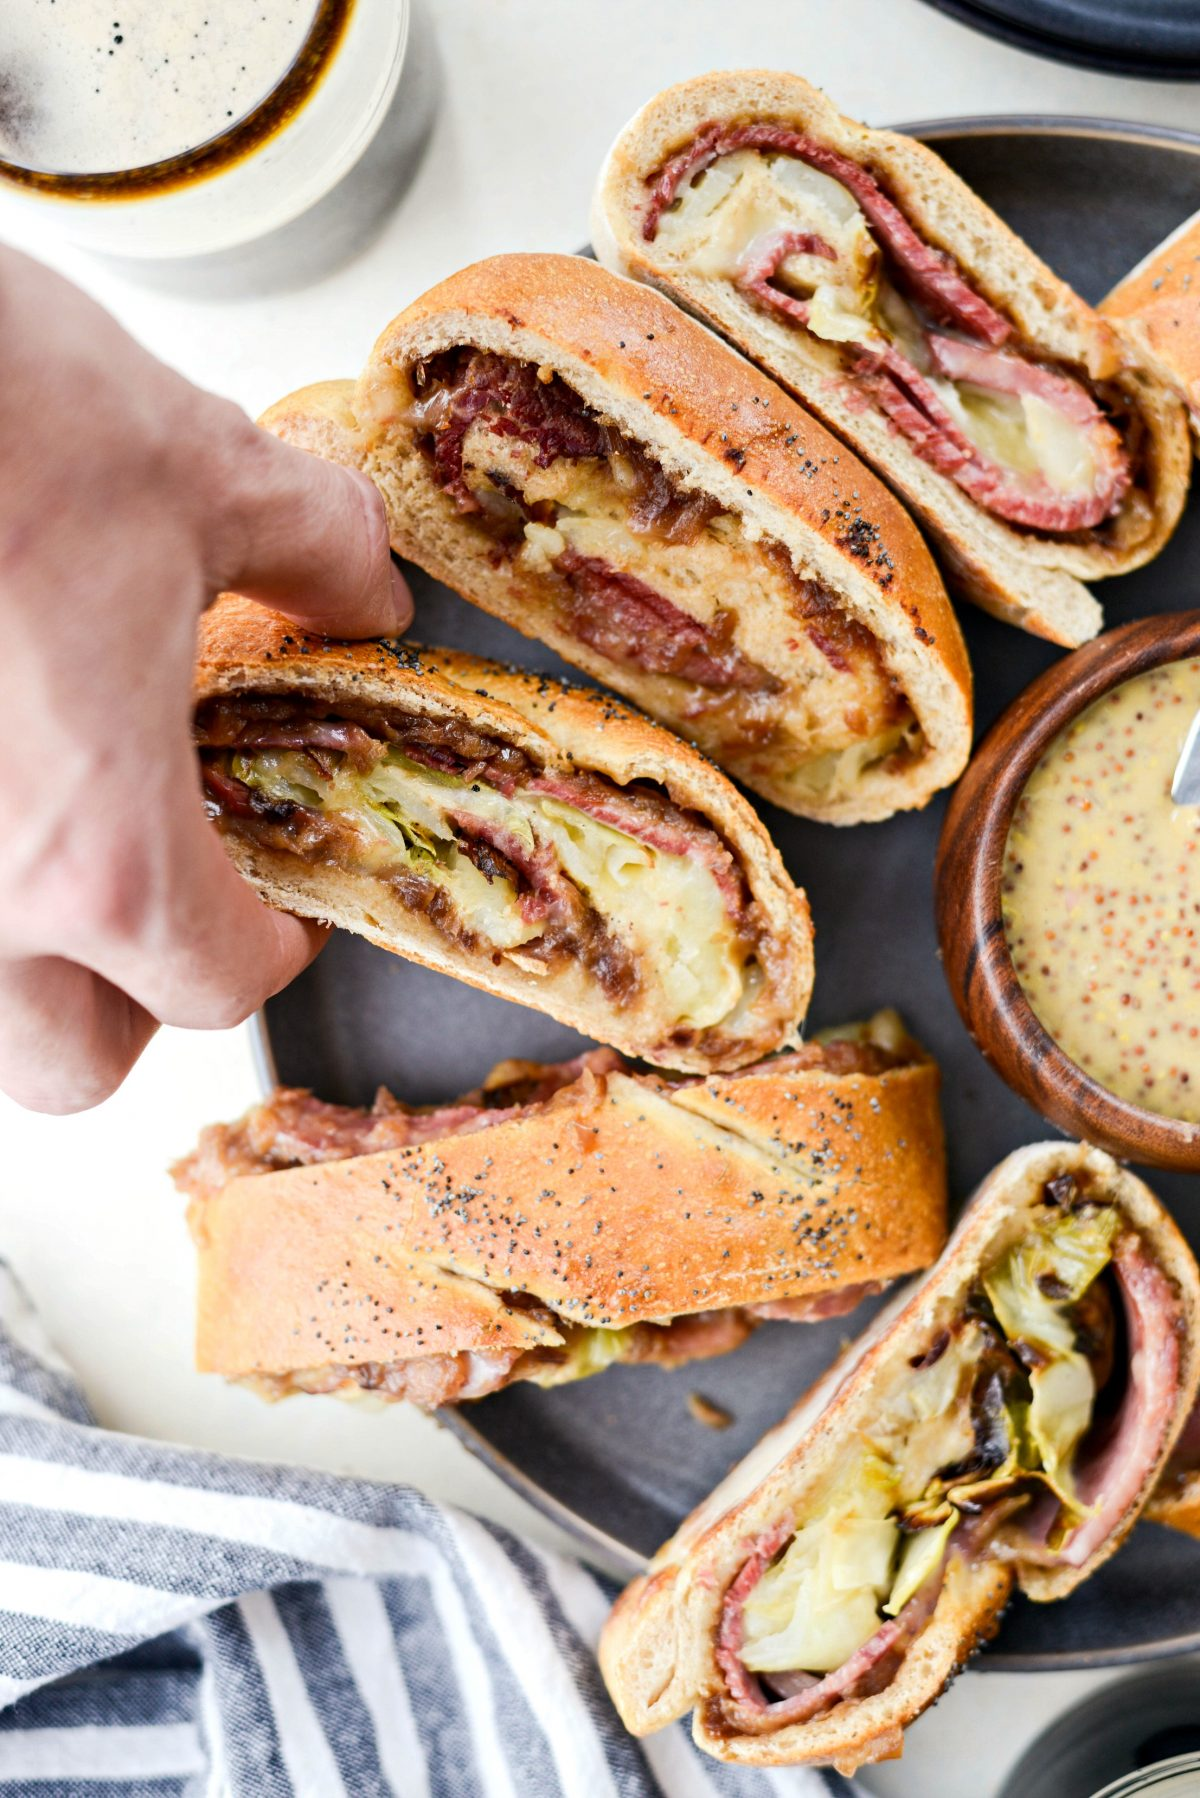 Corned Beef and Cabbage Stromboli with Guinness Mustard l Recipes to Make On St. Patrick's Day